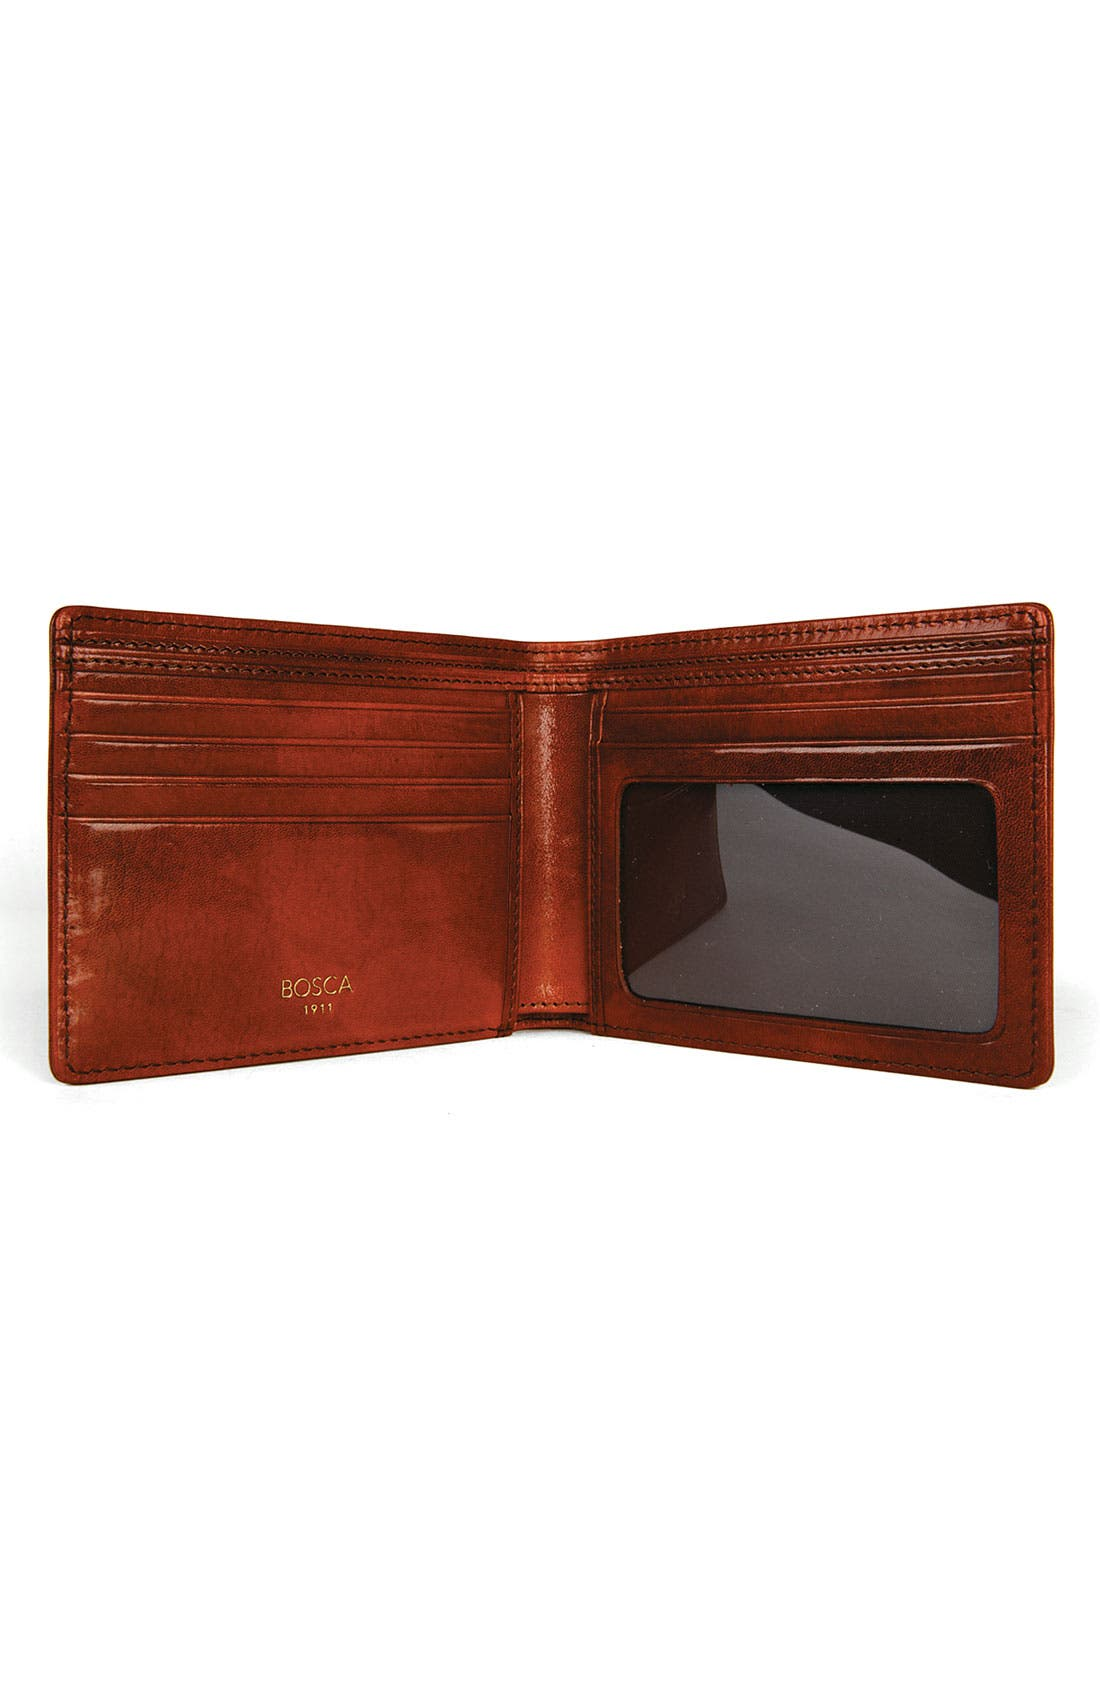 Alternate Image 1 Selected - Bosca 'Executive - Old Leather' Wallet